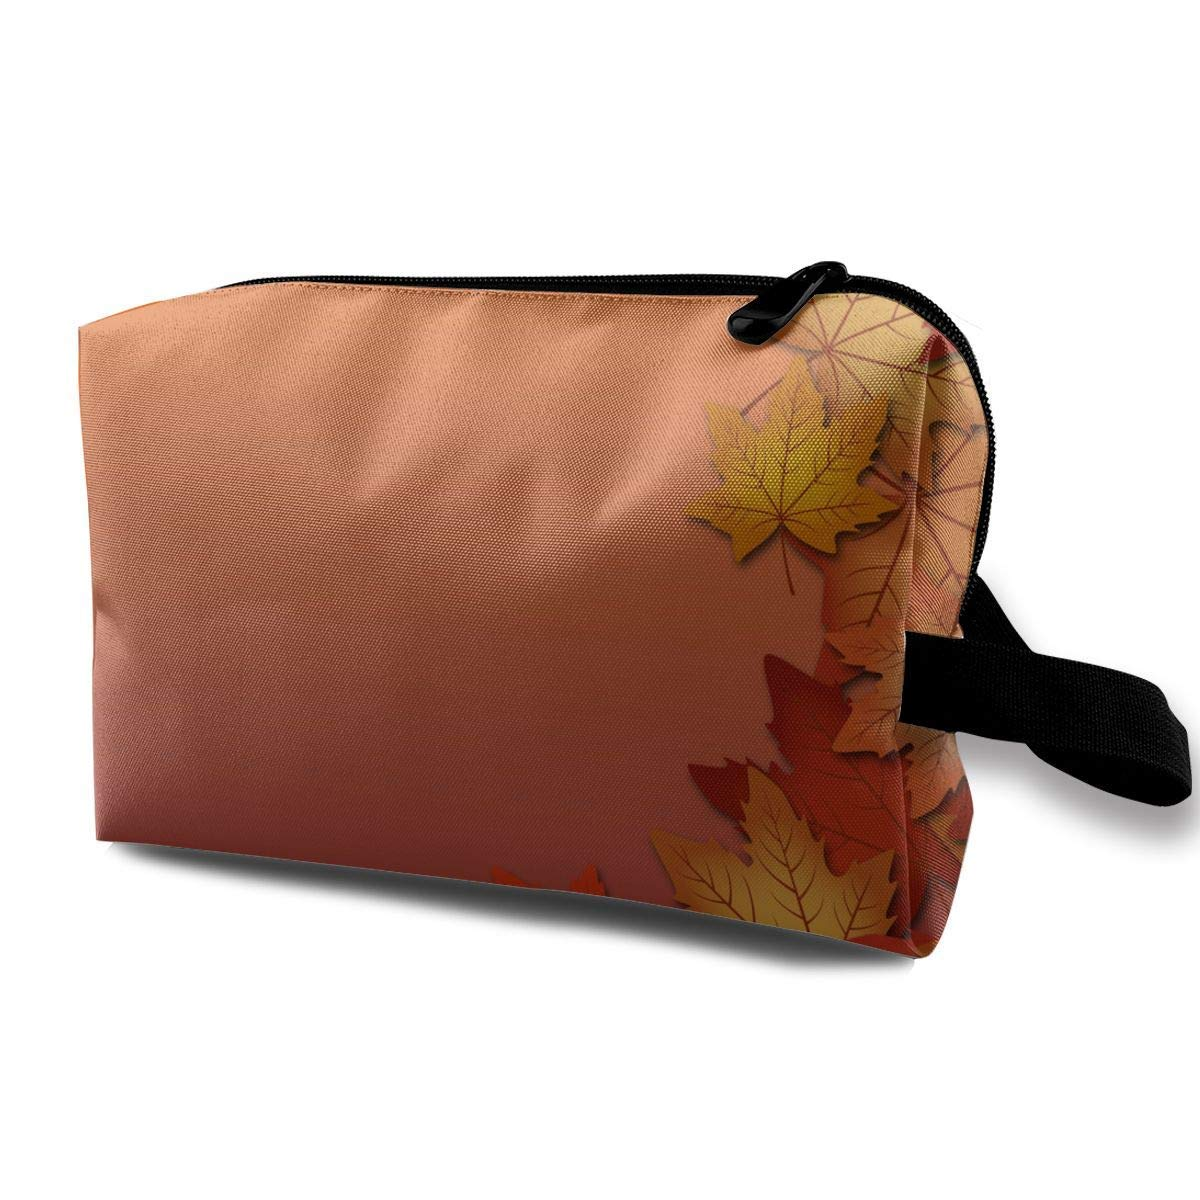 Fall Leave Small Travel Toiletry Bag Super Light Toiletry Organizer for Overnight Trip Bag